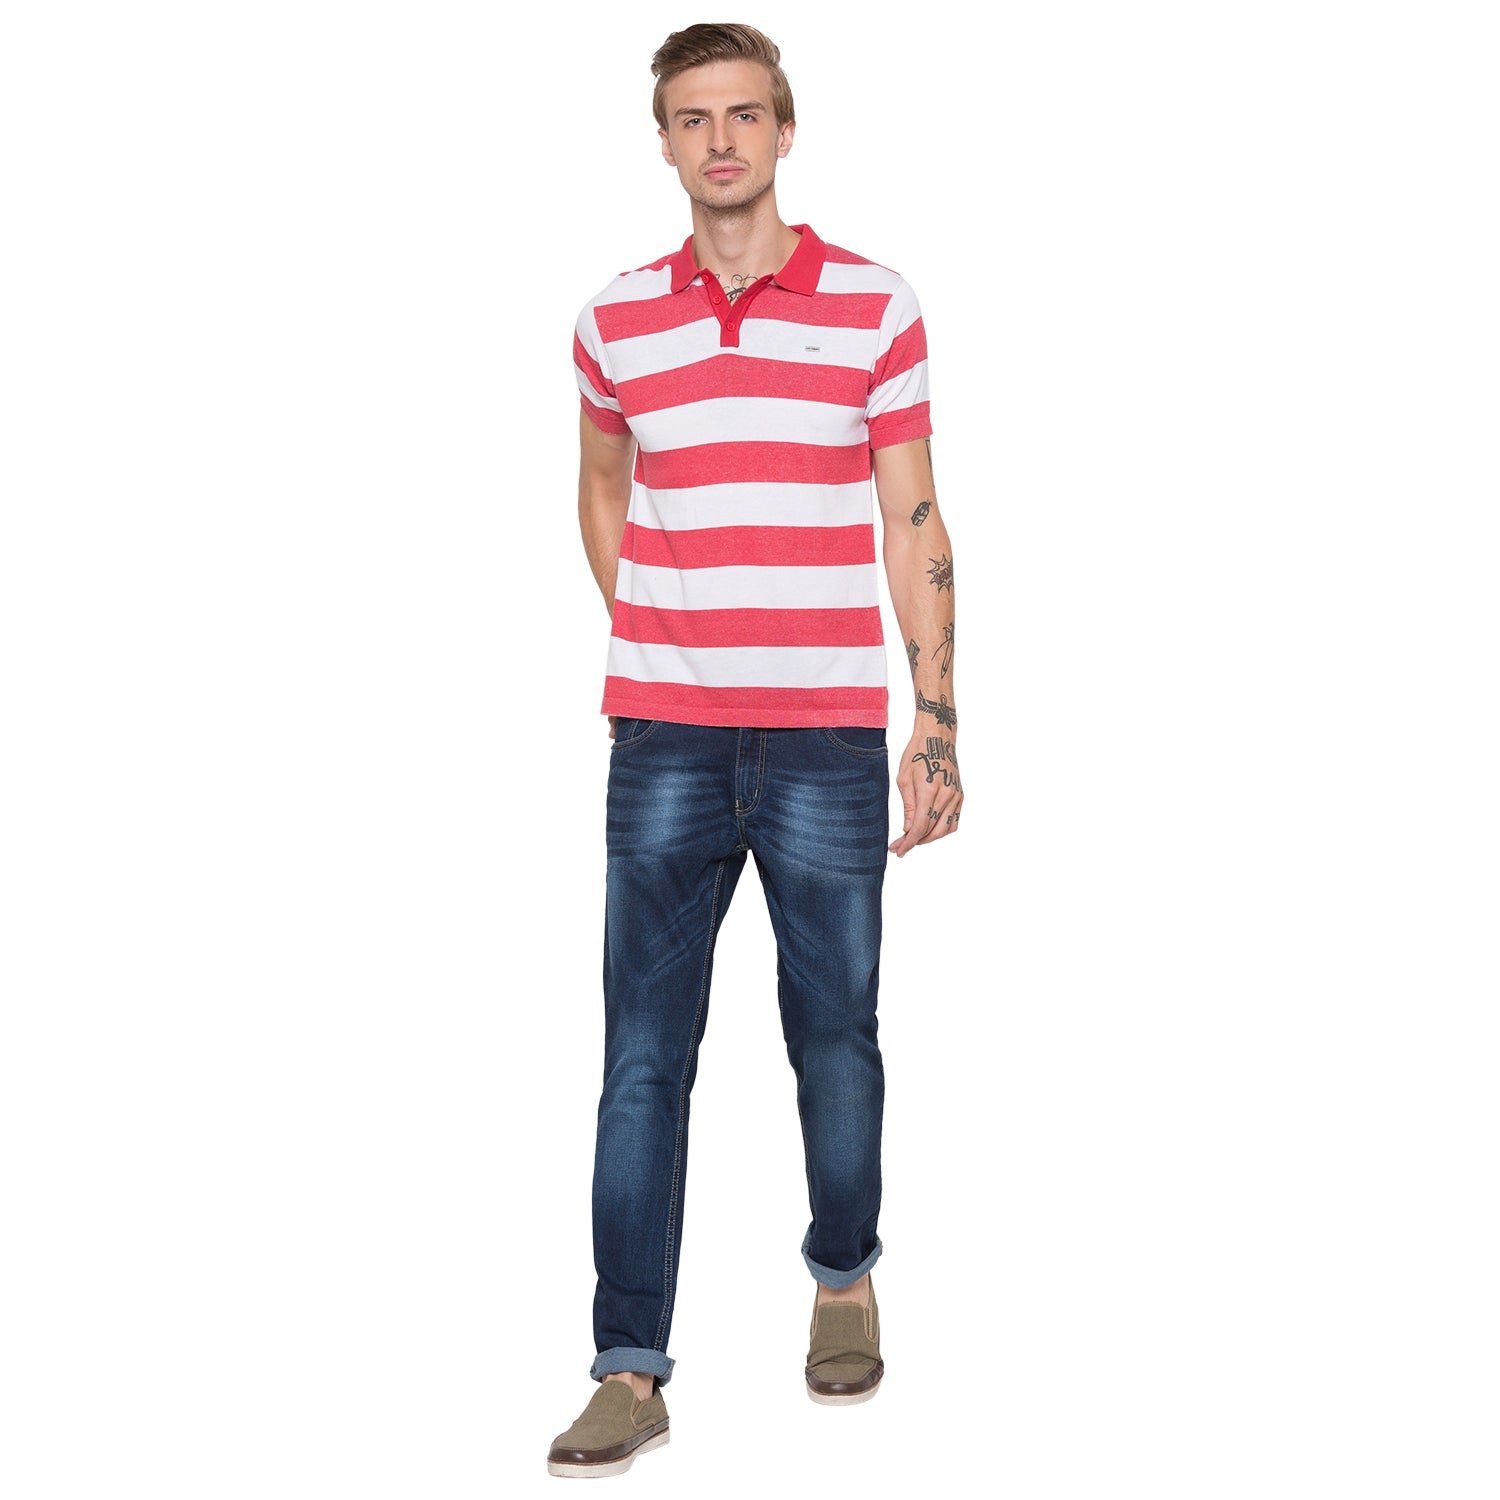 Globus White Striped Polo T-Shirt-4